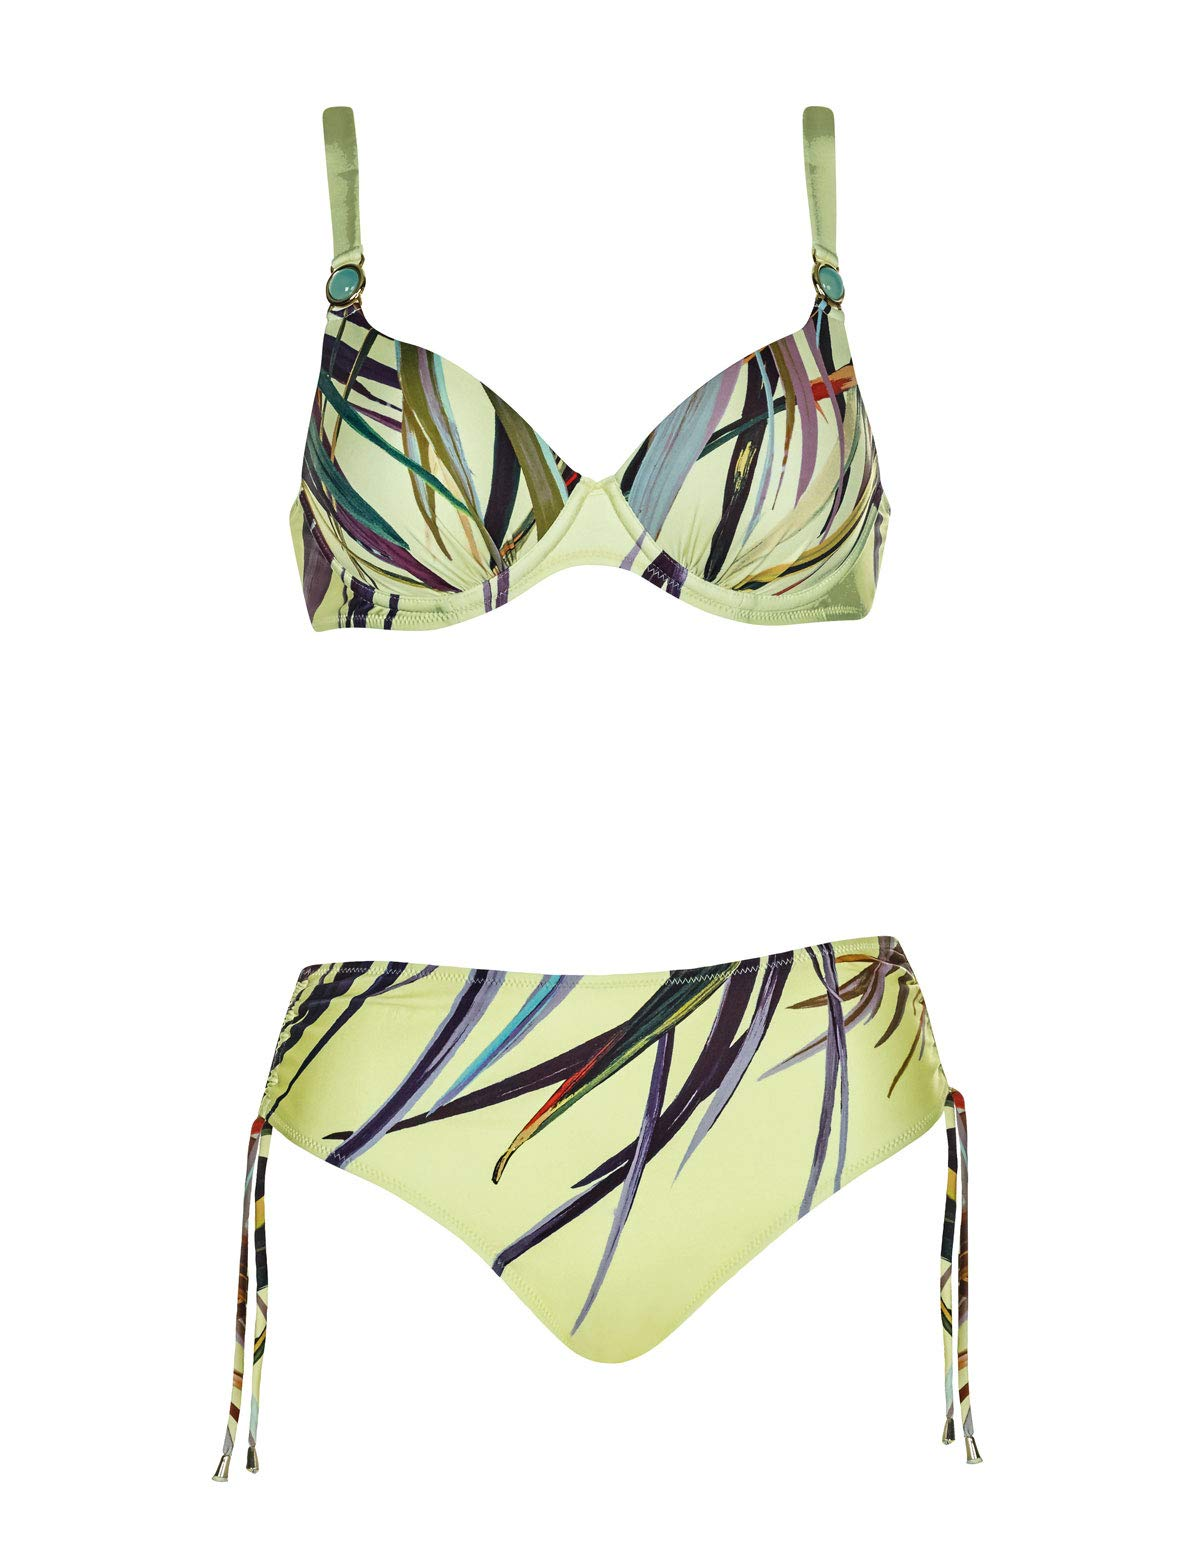 Stylish  Black Under Wired//Lined Halterneck Bikini Top 38C//D Cup By Very NWT